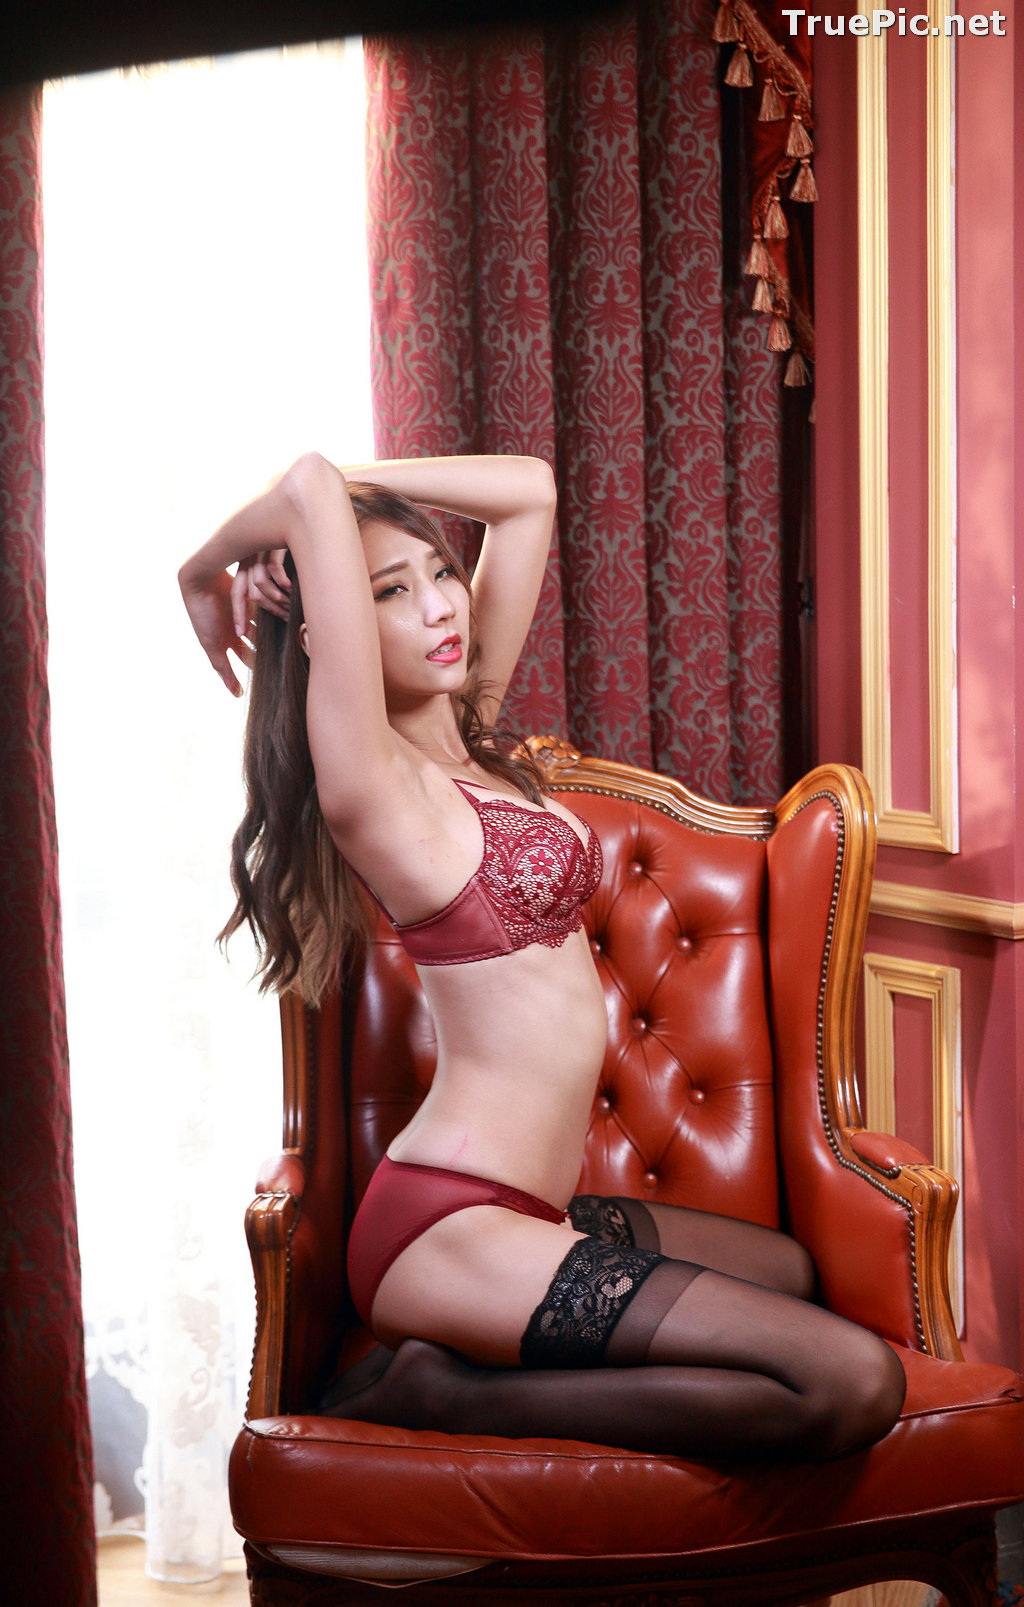 Image Taiwanese Long Legs Model - 黃韻斐 - Sexy Girl In Lingerie At Room - TruePic.net - Picture-9